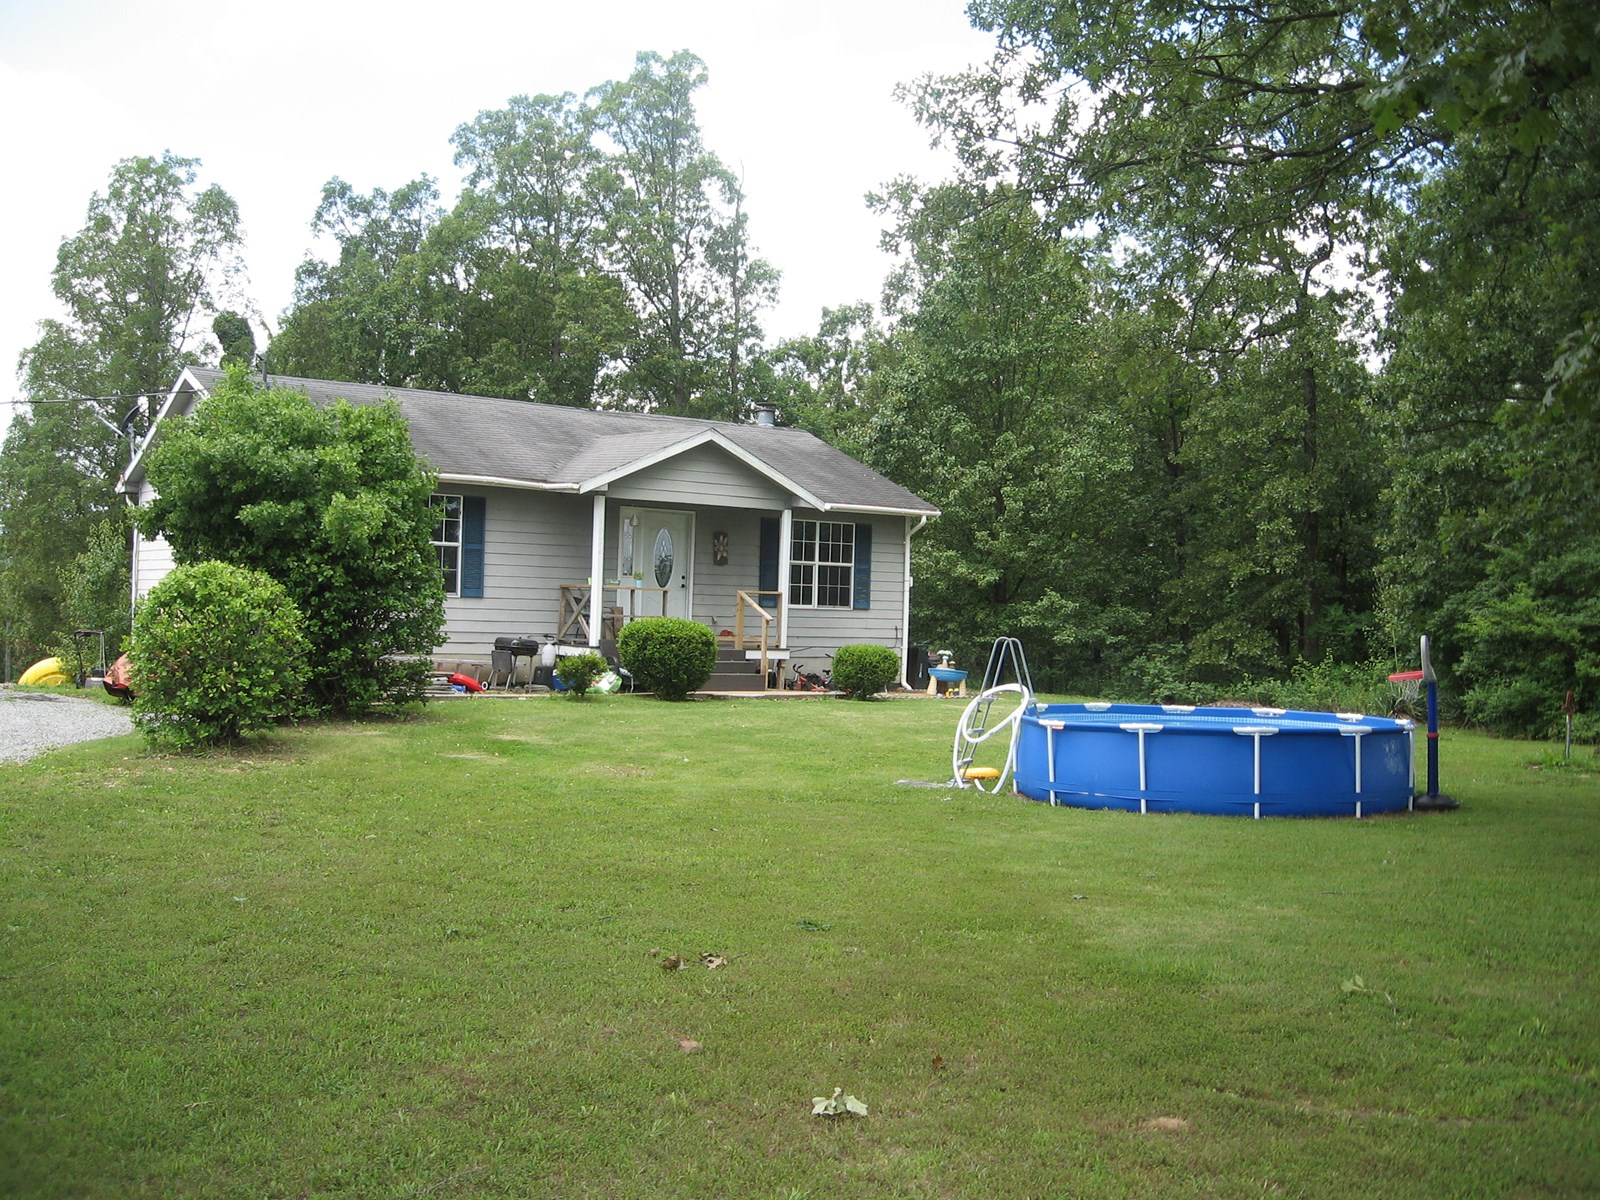 OUT OF TOWN 3-BR, 2-BA ON 3 ACRES: